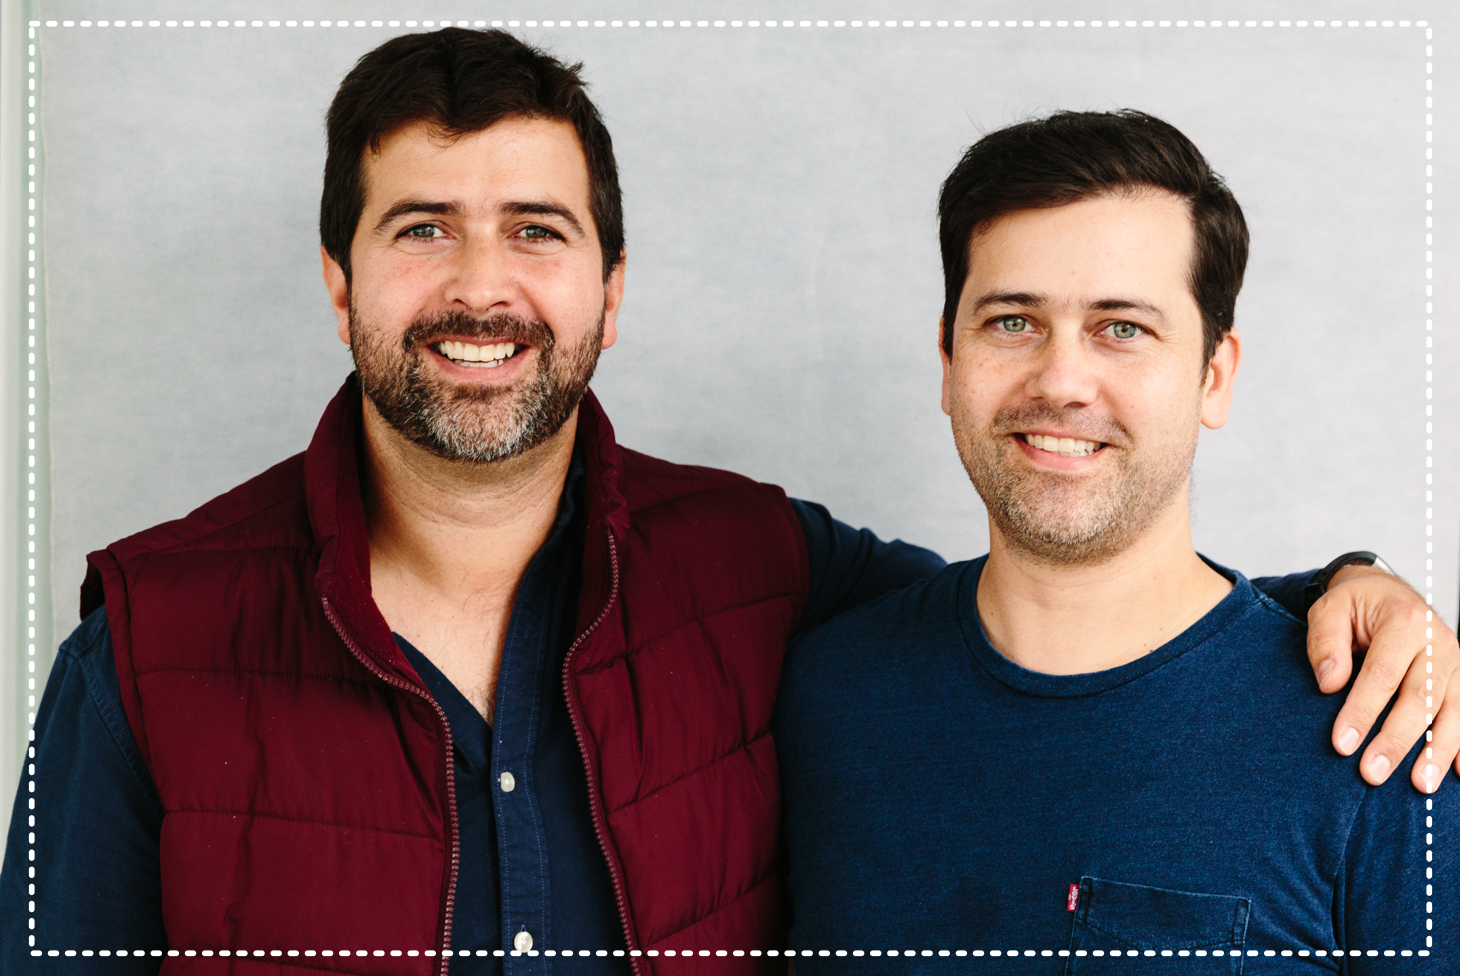 brothers-founders-makhan.jpg